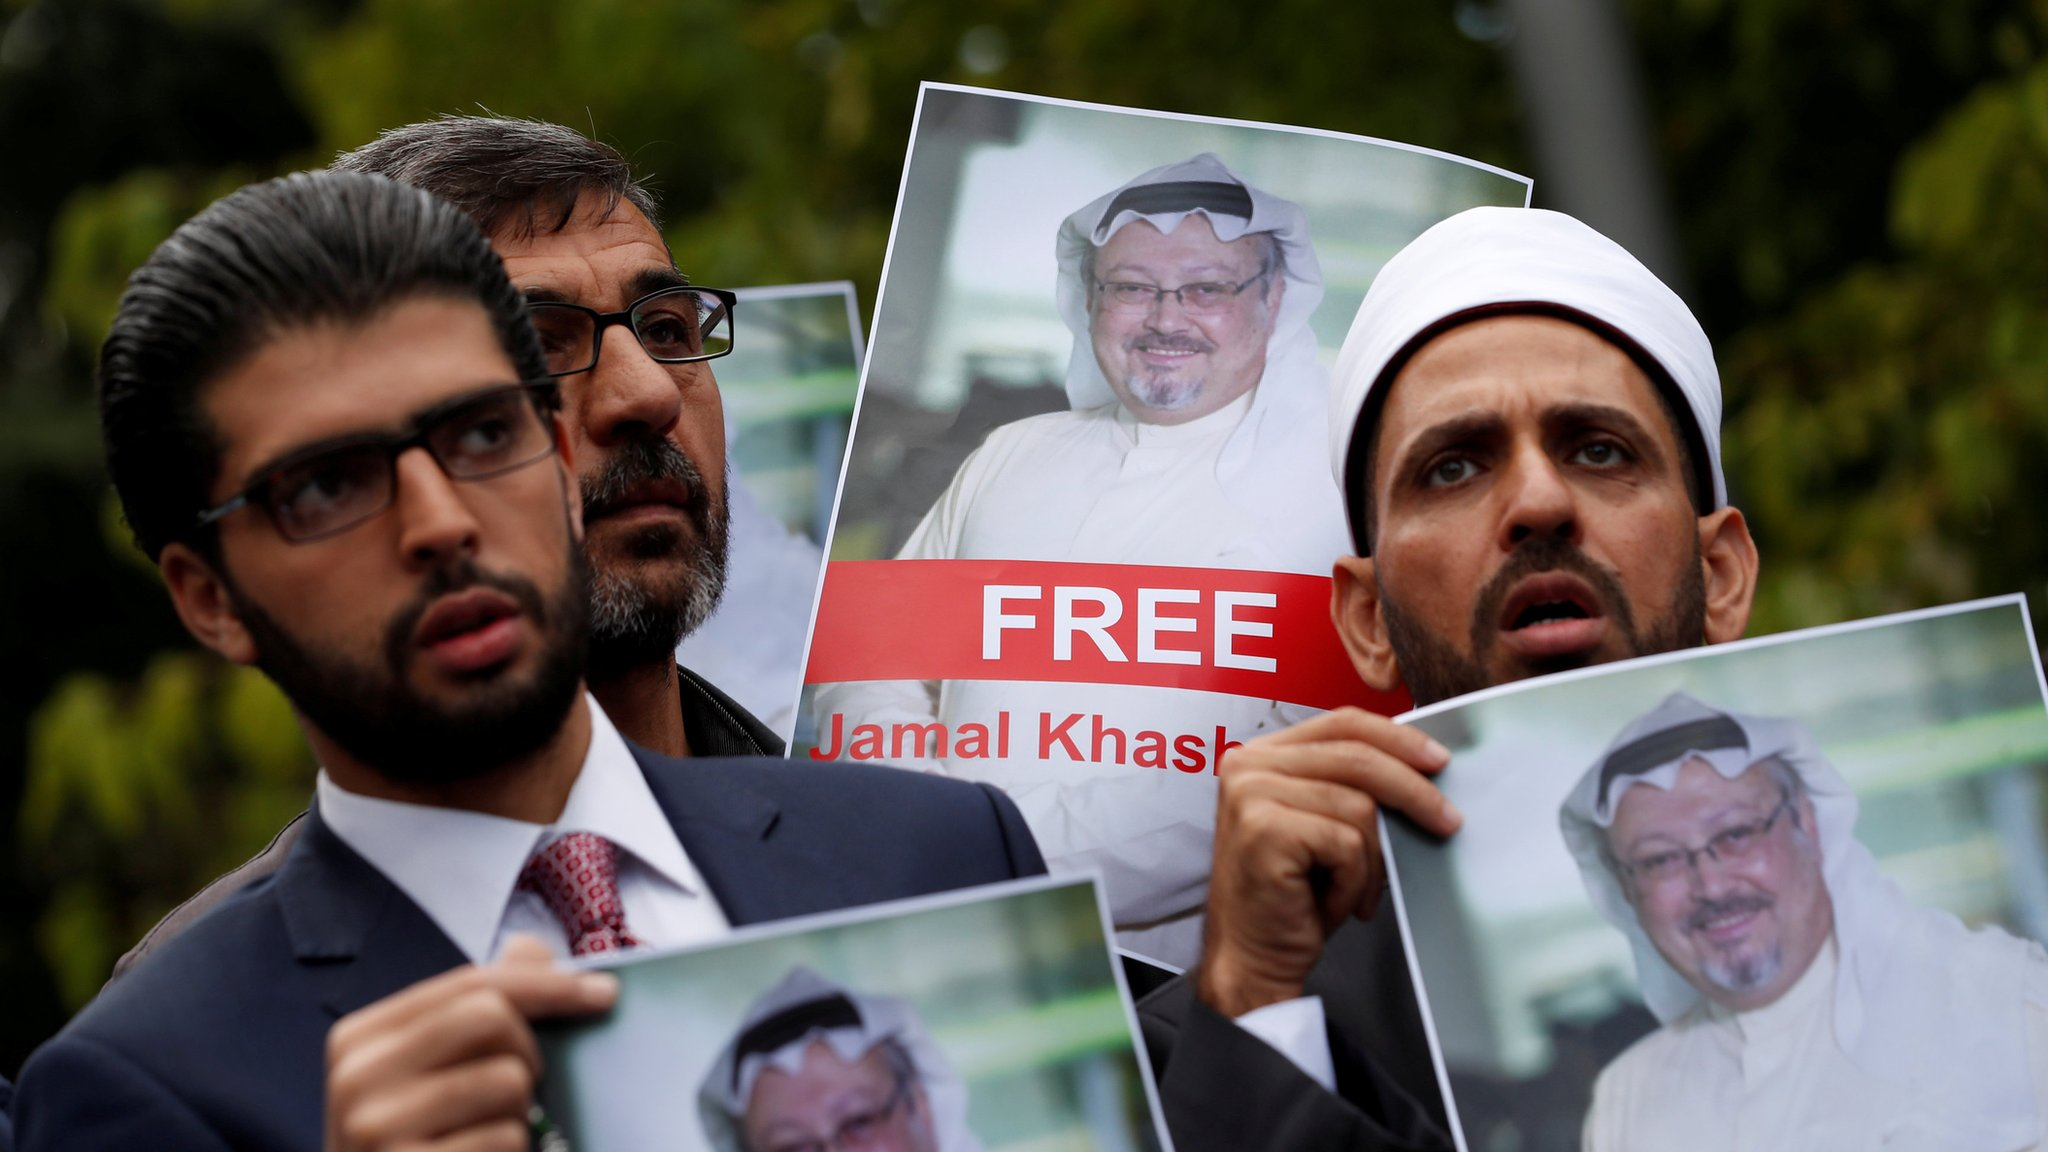 Khashoggi case sends chill through Middle East activists